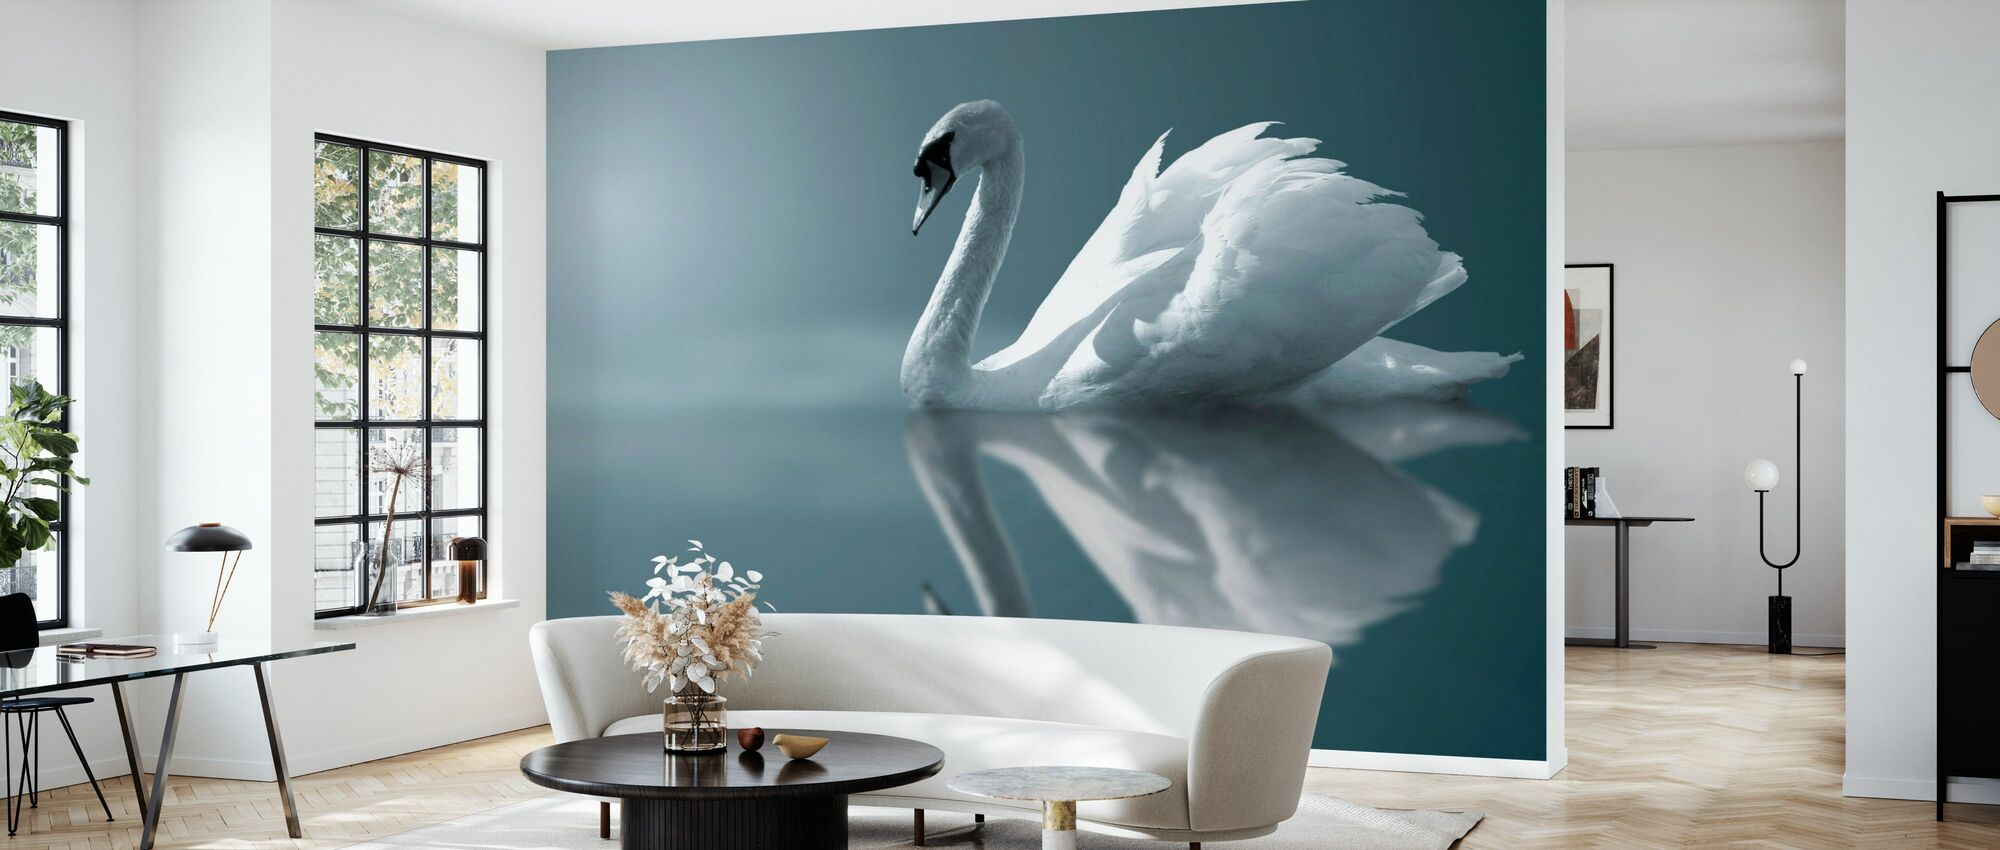 Swan Reflektion - Tapet - Vardagsrum